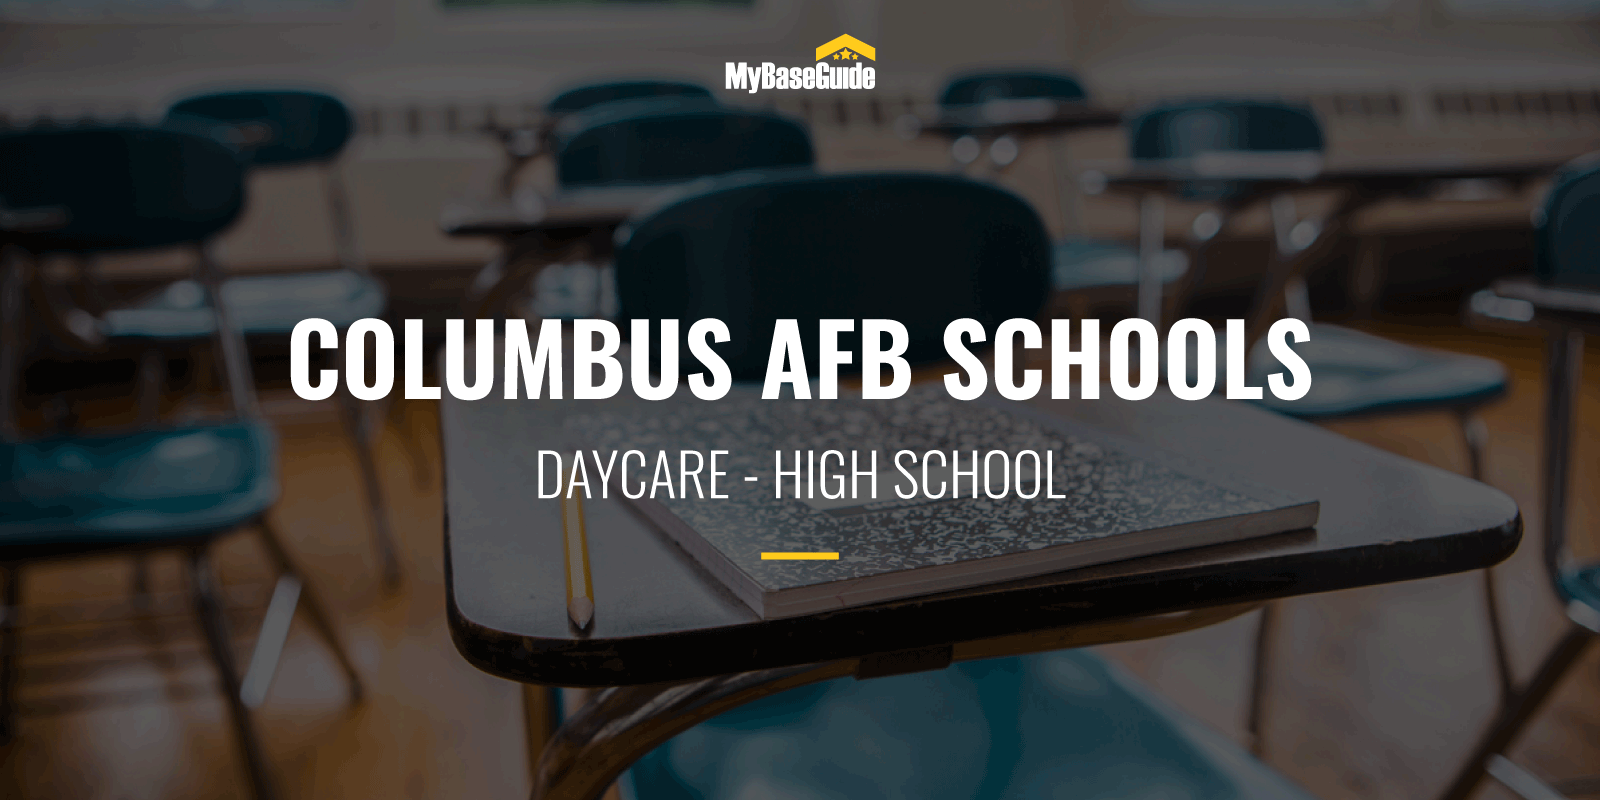 Columbus AFB Schools: Daycare - High School